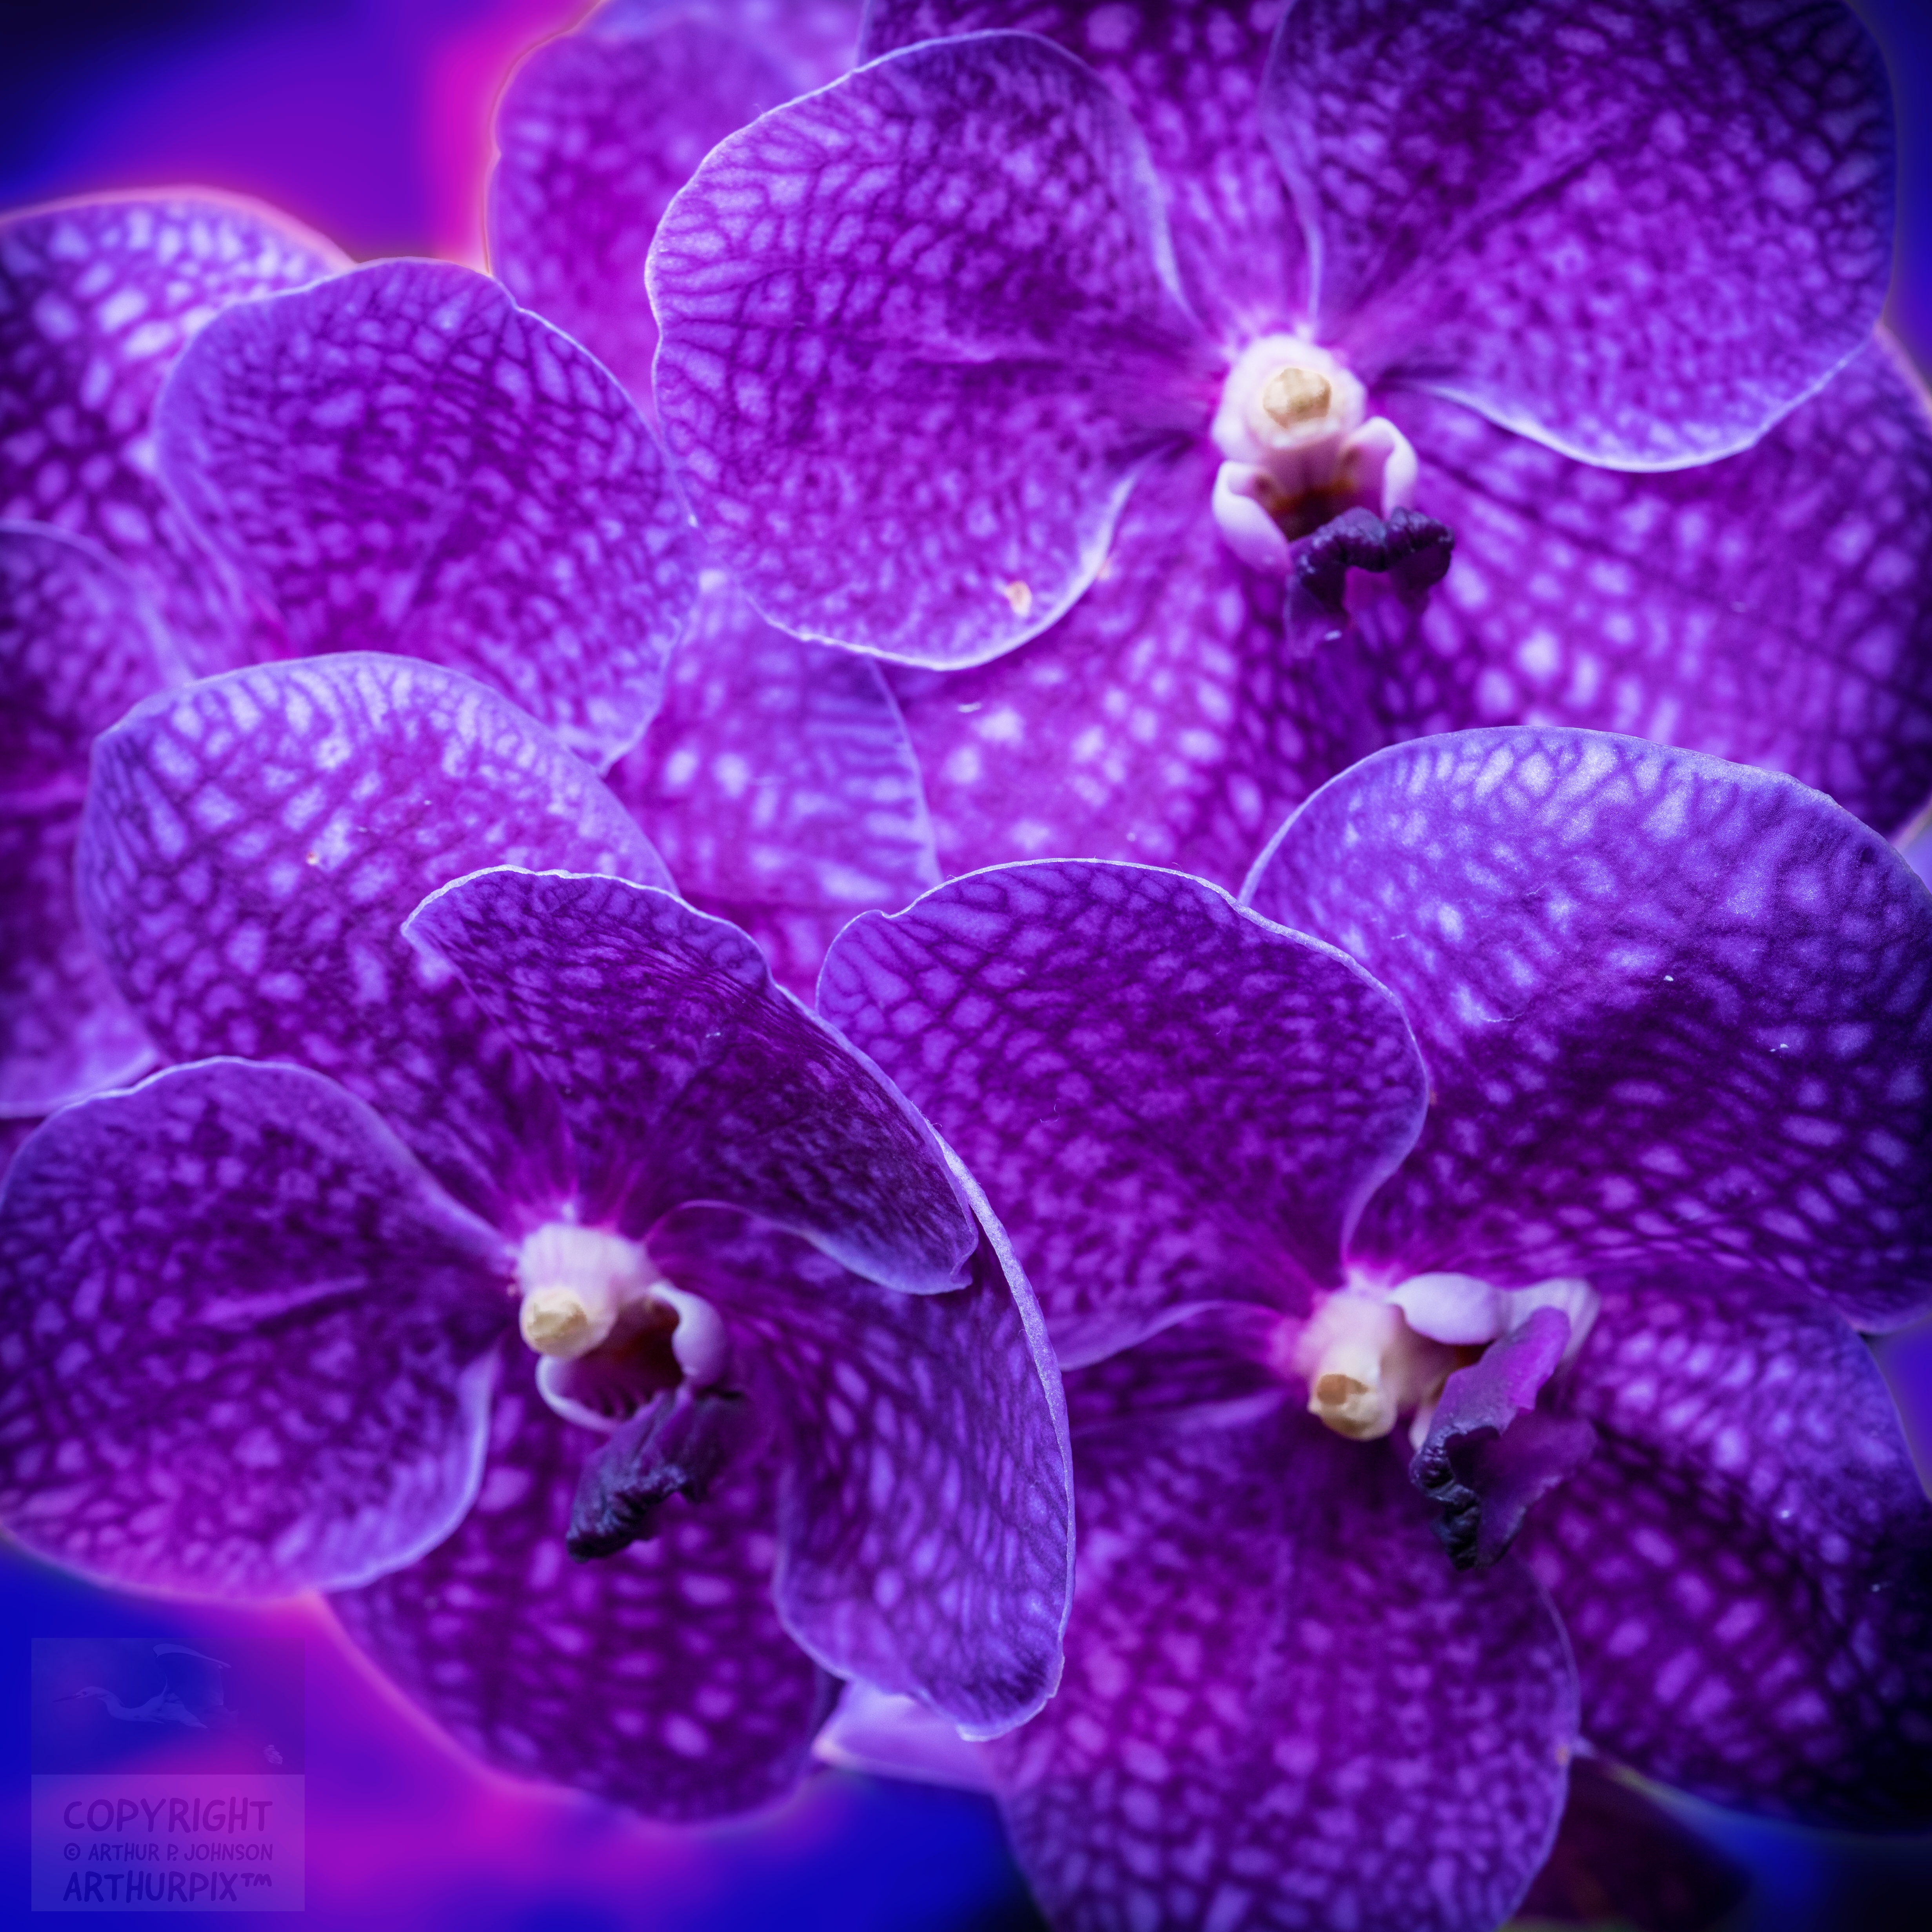 Deep purple cluster or orchid blossoms.